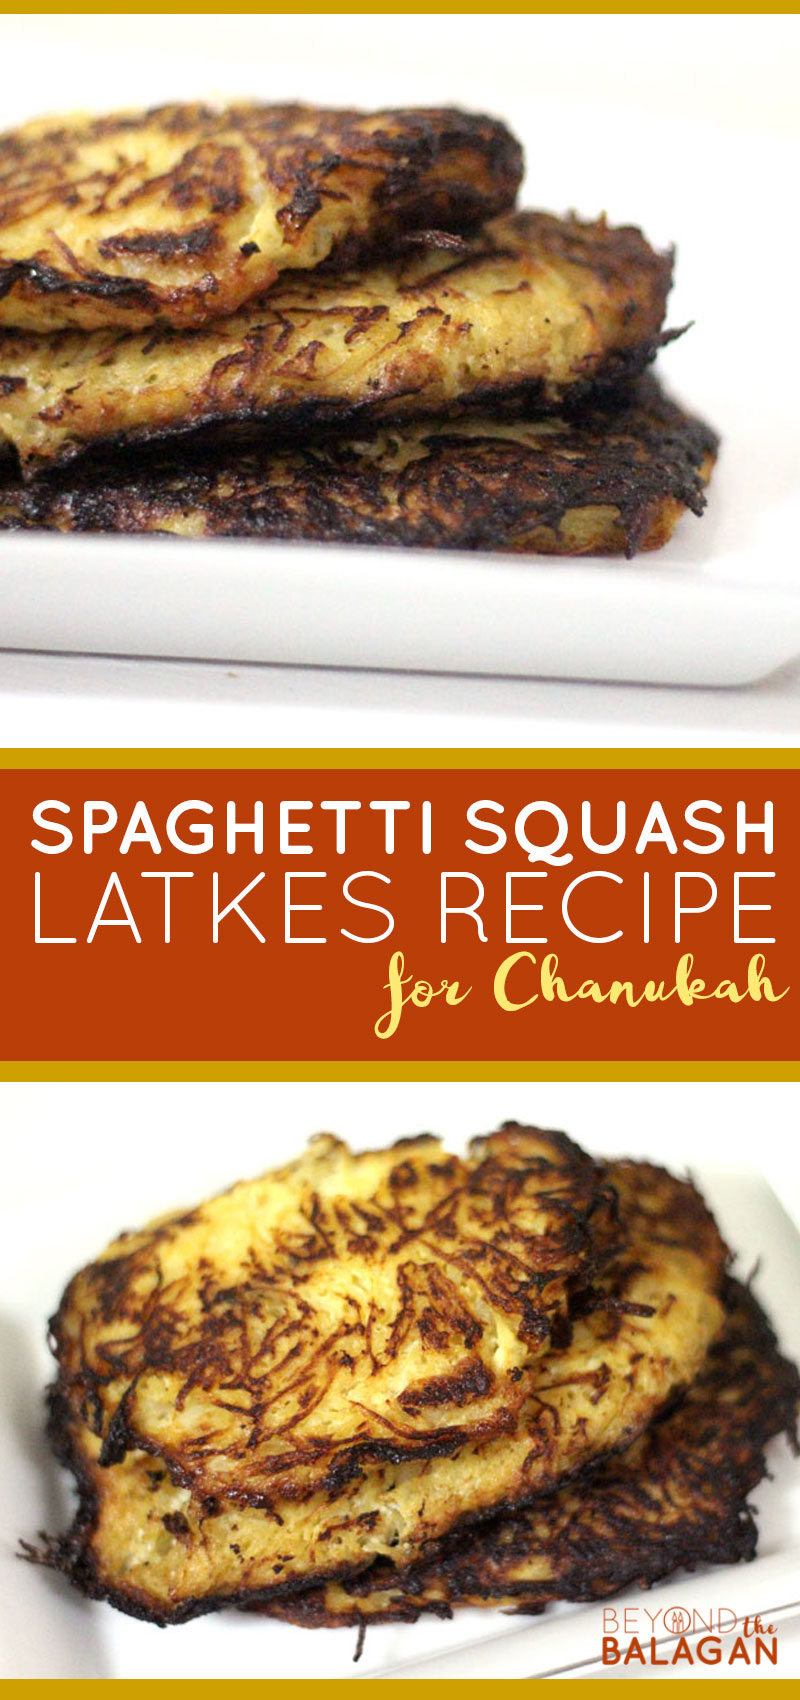 Click for the recipe to make these delicious spaghetti squash latkes recipe for Chanukah or Hanukkah. this is a great way to celebrate Chanukah with kids and perfect traditional latkes recipe for a family Hannukah party.